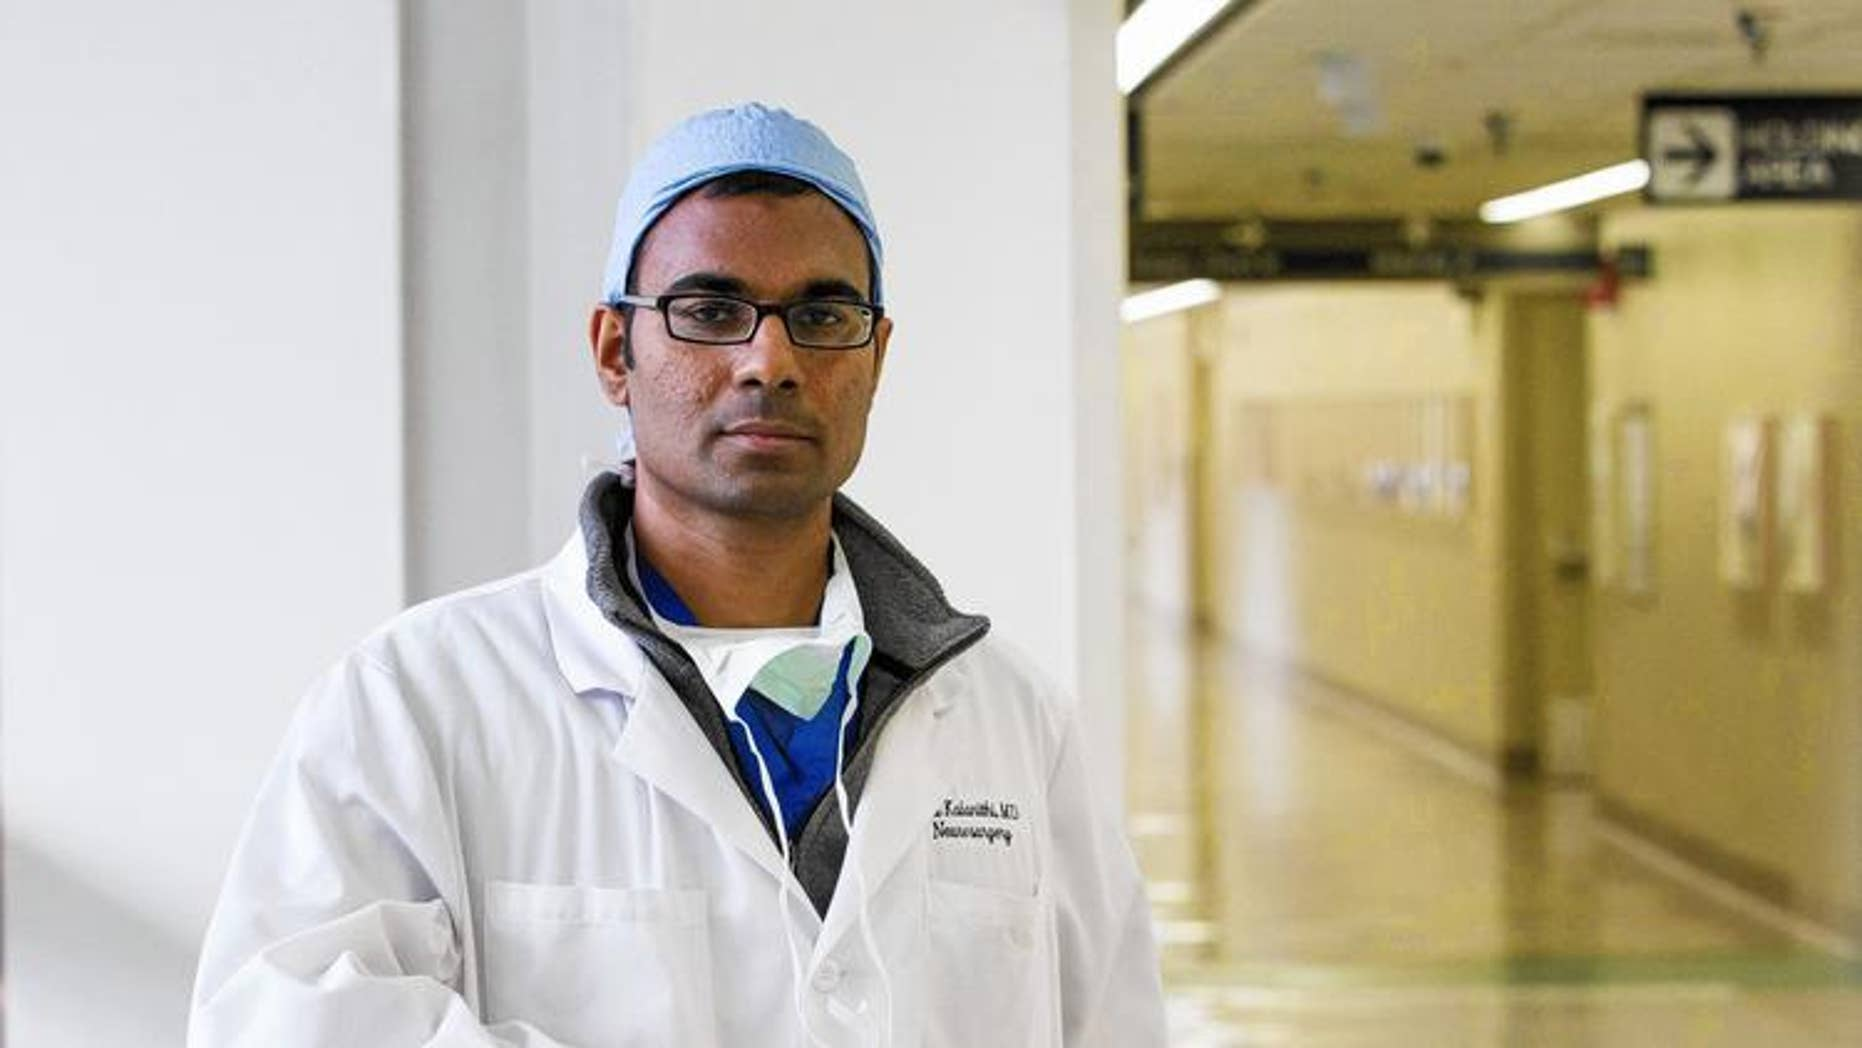 Paul Kalanithi was a neurosurgeon and writer. He died in March 2015.